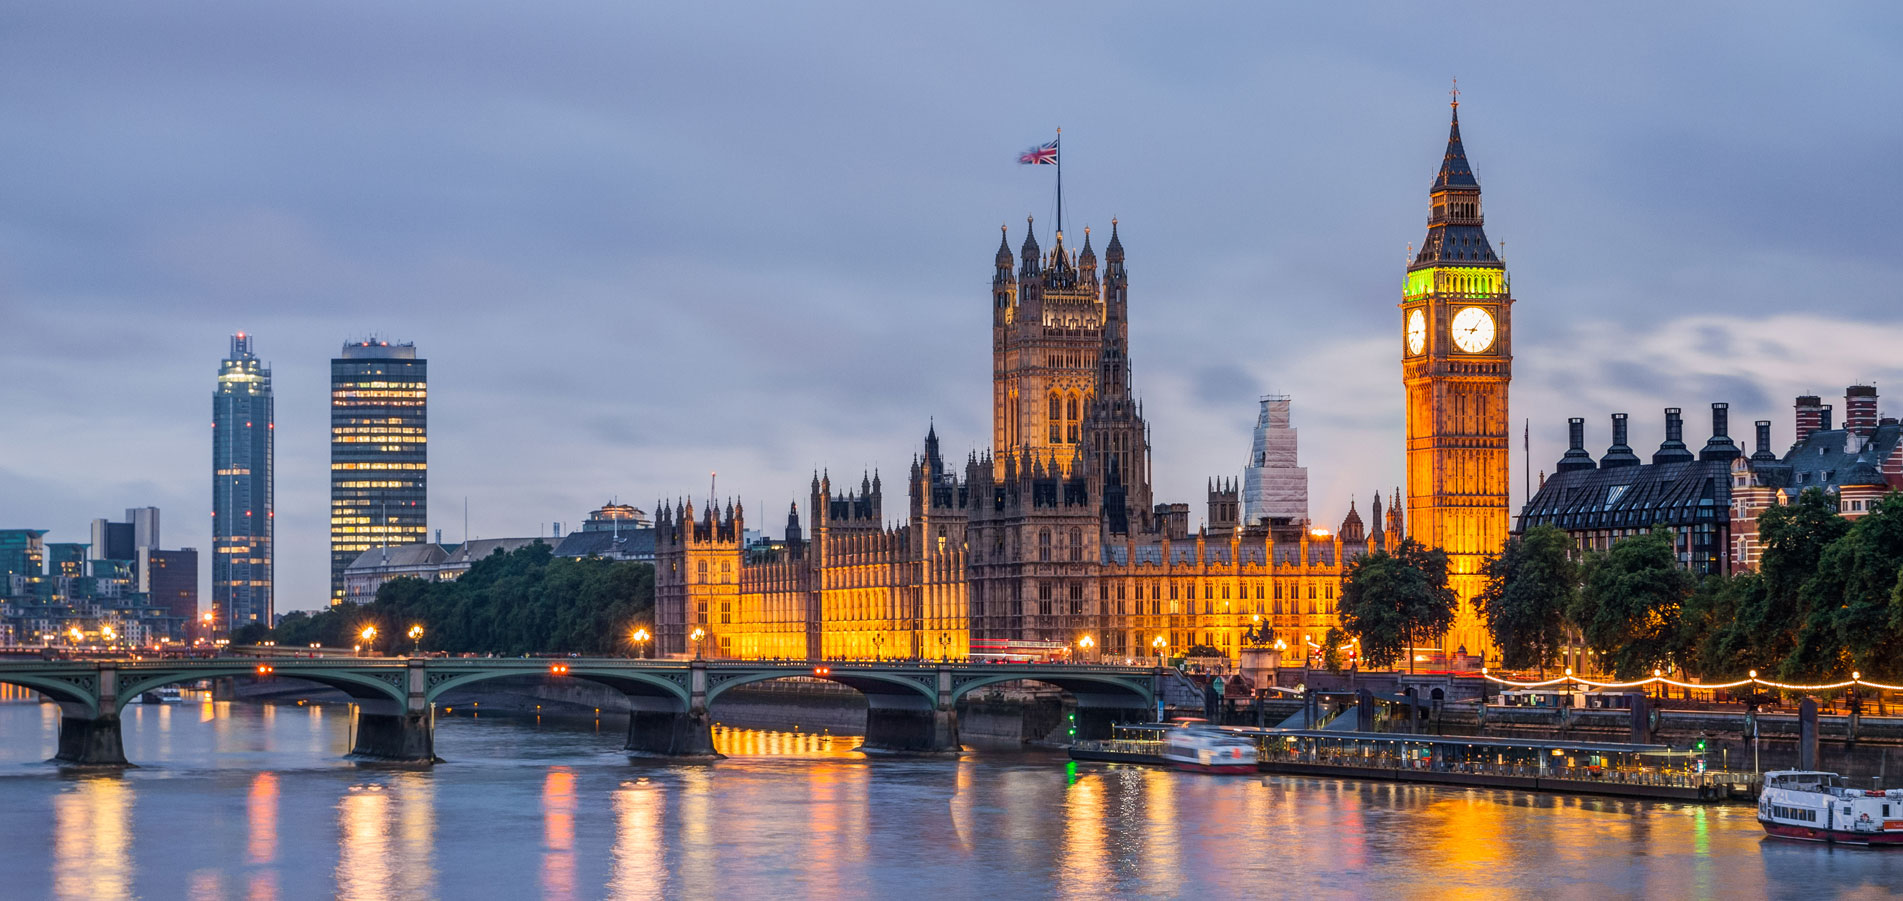 London hotel discounts for airline employees